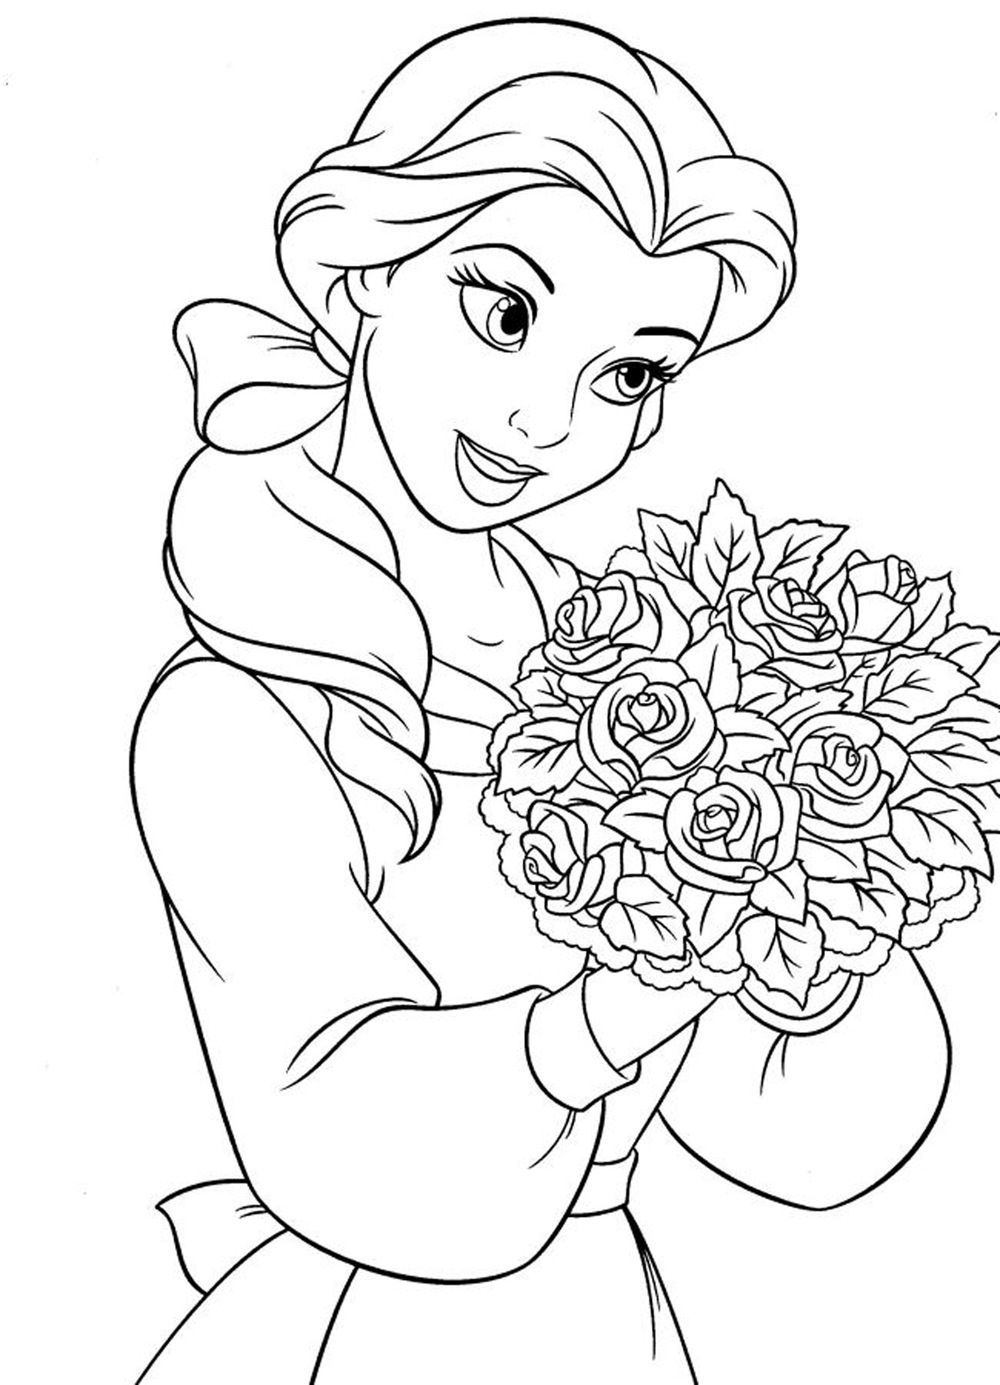 Colouring pages with colour - Colour Book Disney Download Image Easy Painting Pages Categories